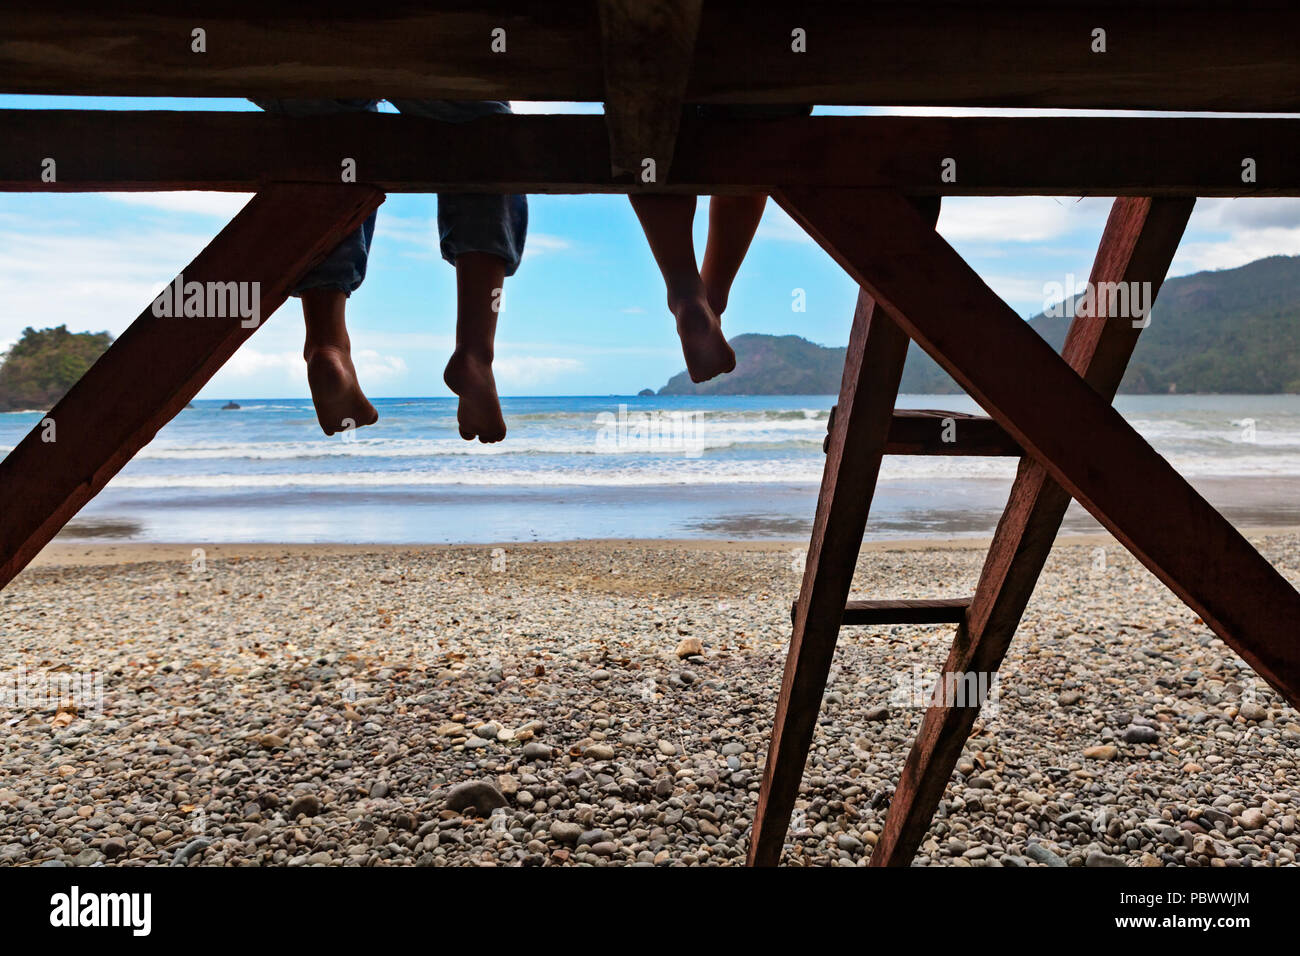 Happy kids have fun on beach walk. Children sit on lifeguard tower edge, dangling bare feet, look at sea surf. Black silhouette. Vacations travel life - Stock Image